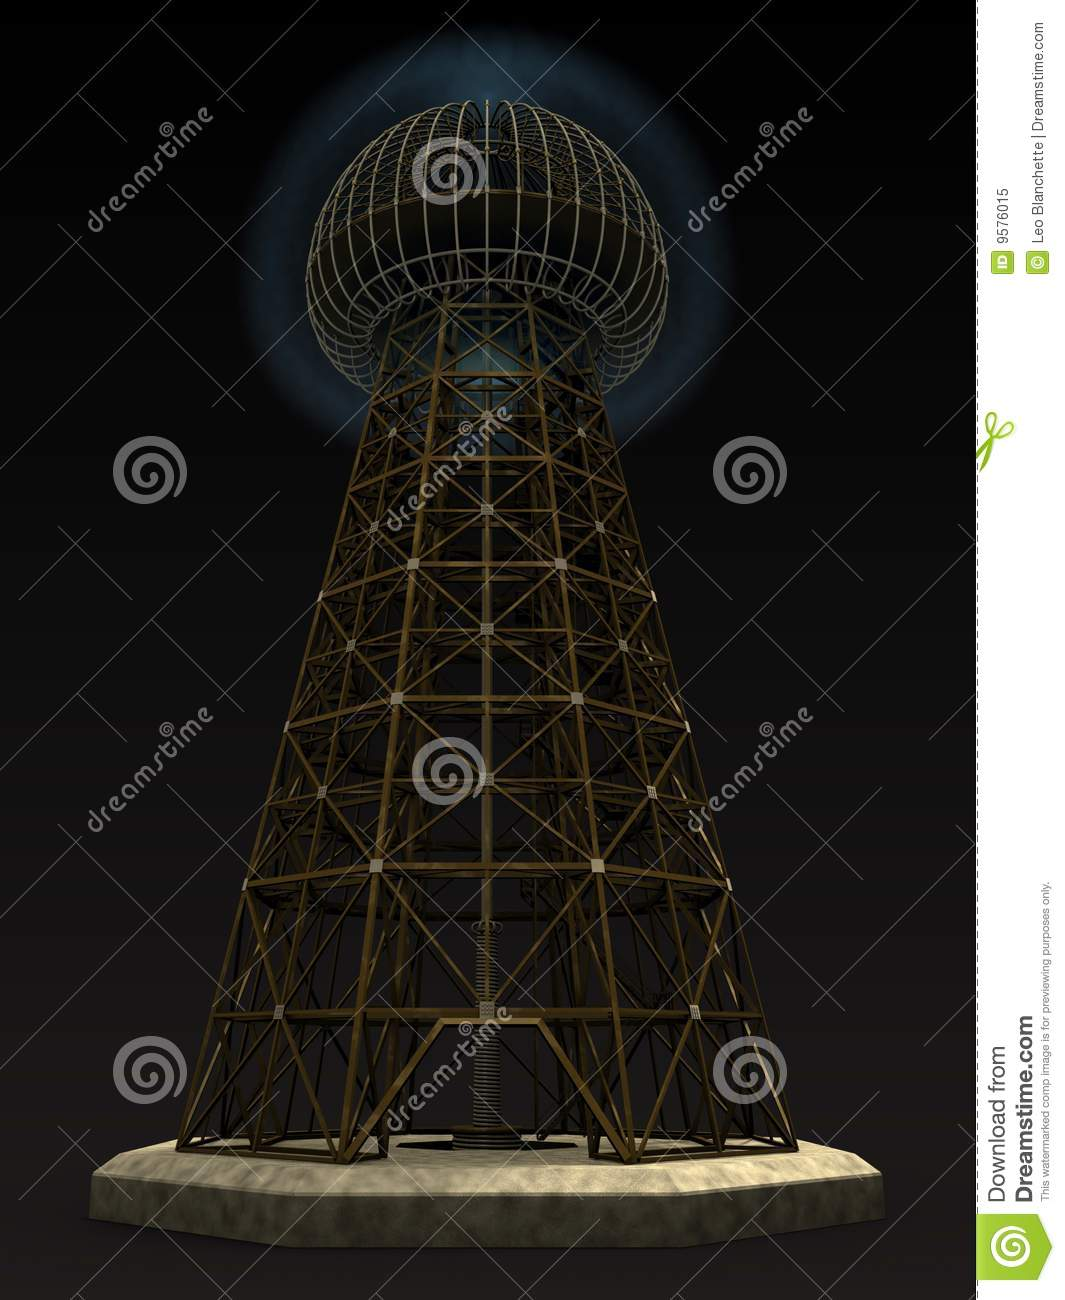 Wardenclyffe Cartoons Illustrations Amp Vector Stock Images